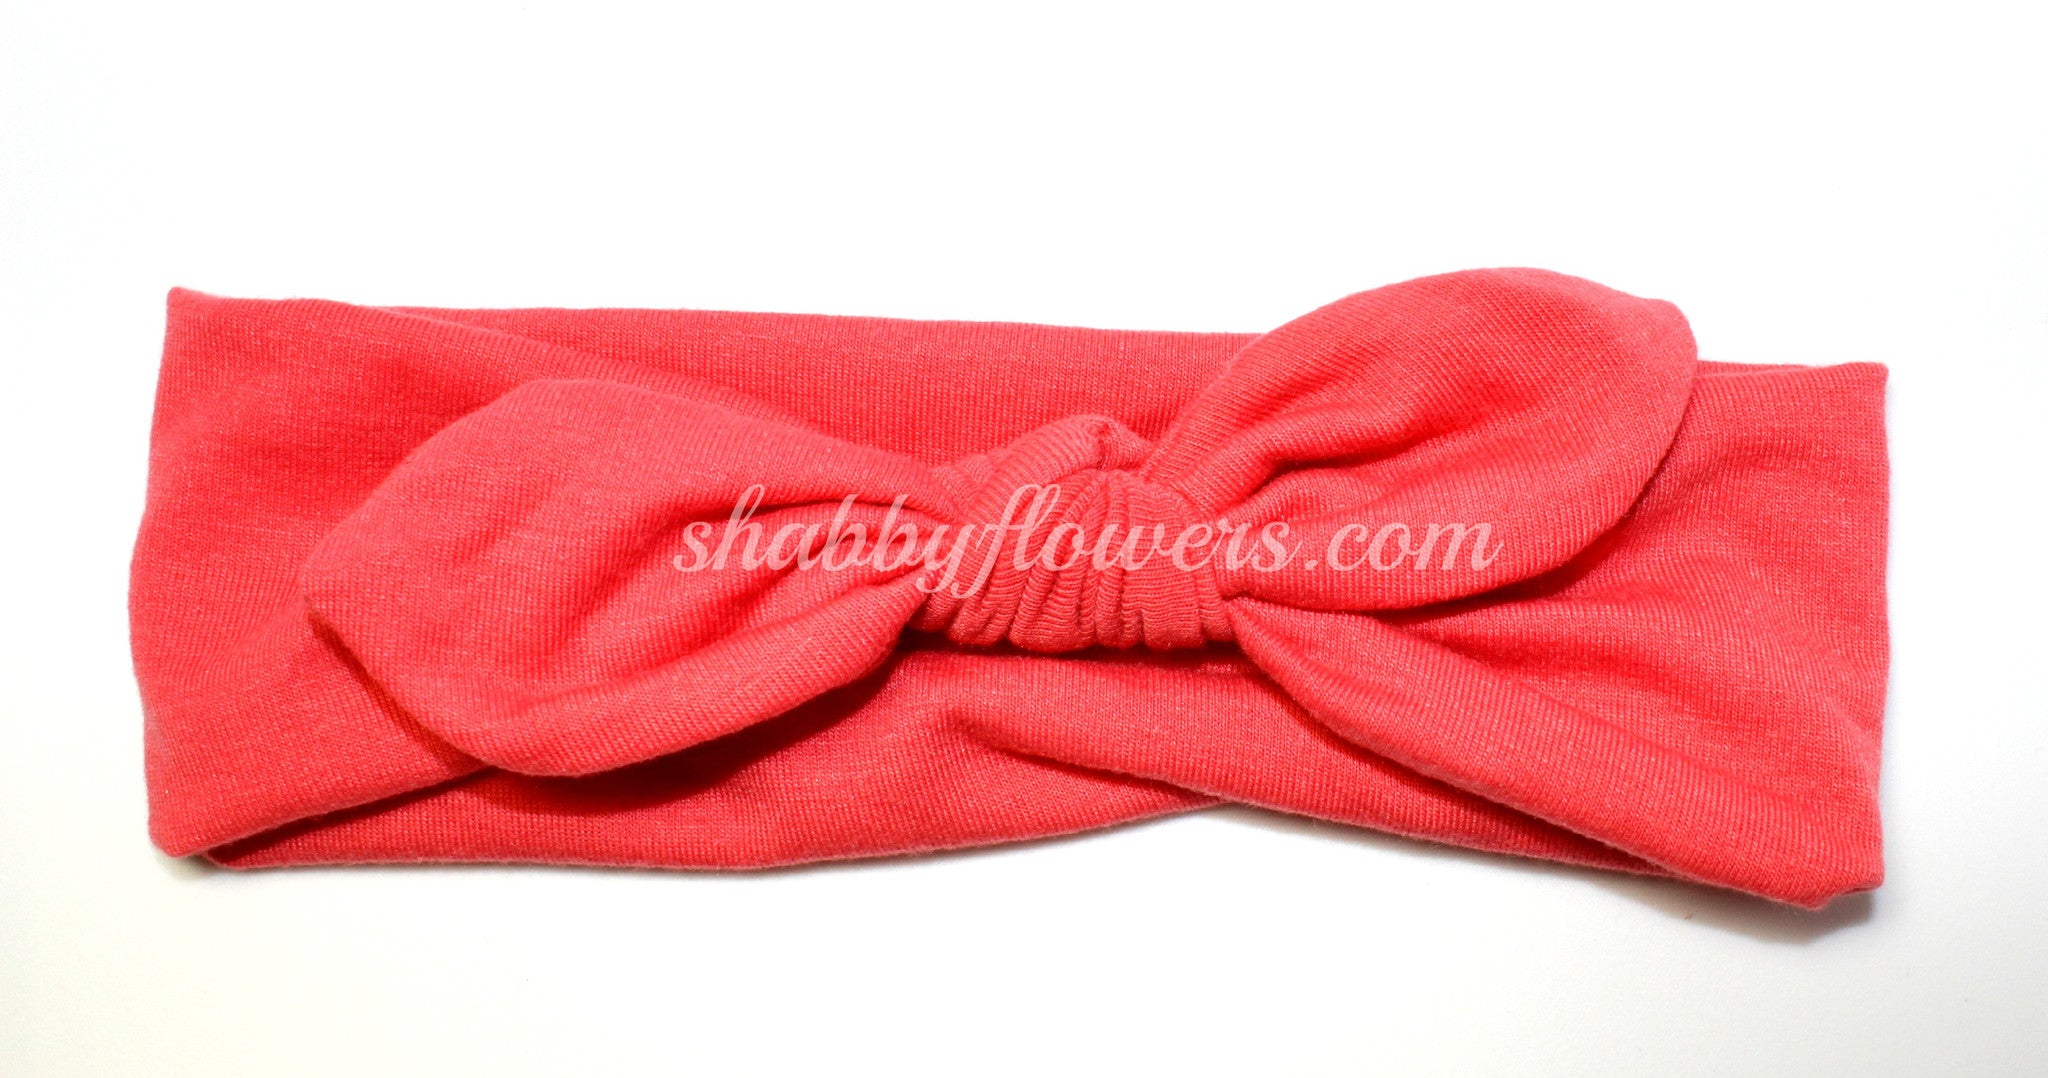 Knot Headband in Dark Coral - Regular - shabbyflowers.com